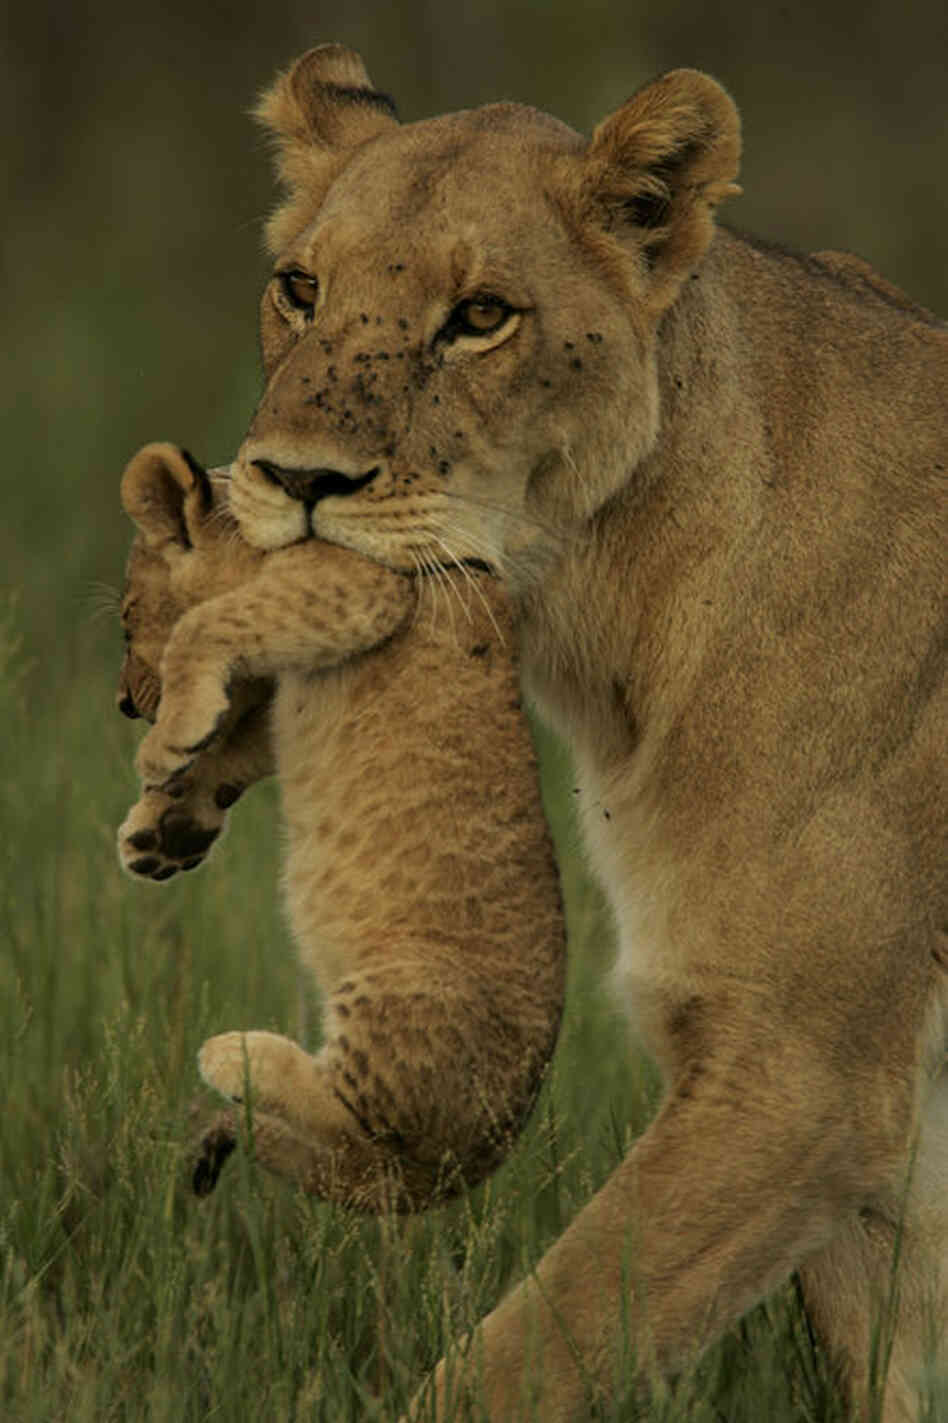 The lioness, whom the filmmakers have dubbed Ma di Tau, finds herself struggling to hunt alone with cubs to feed.